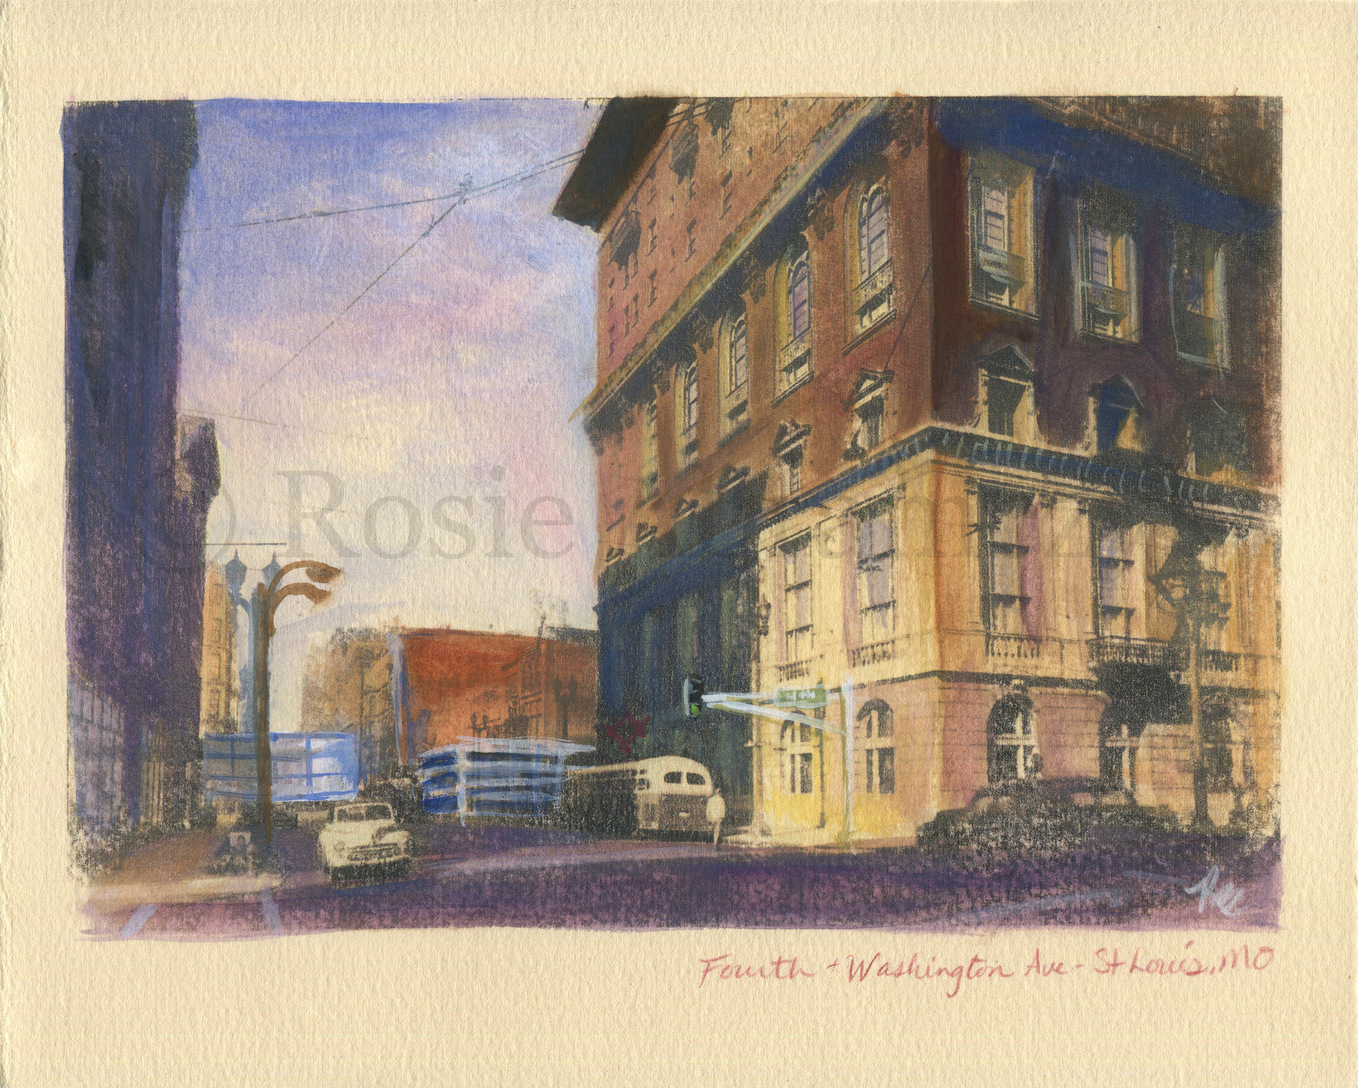 Fourth St and Washington Ave., St. Louis, MO, by Rosie Abramczyk, Gouache and Xerox Transfer, 2008